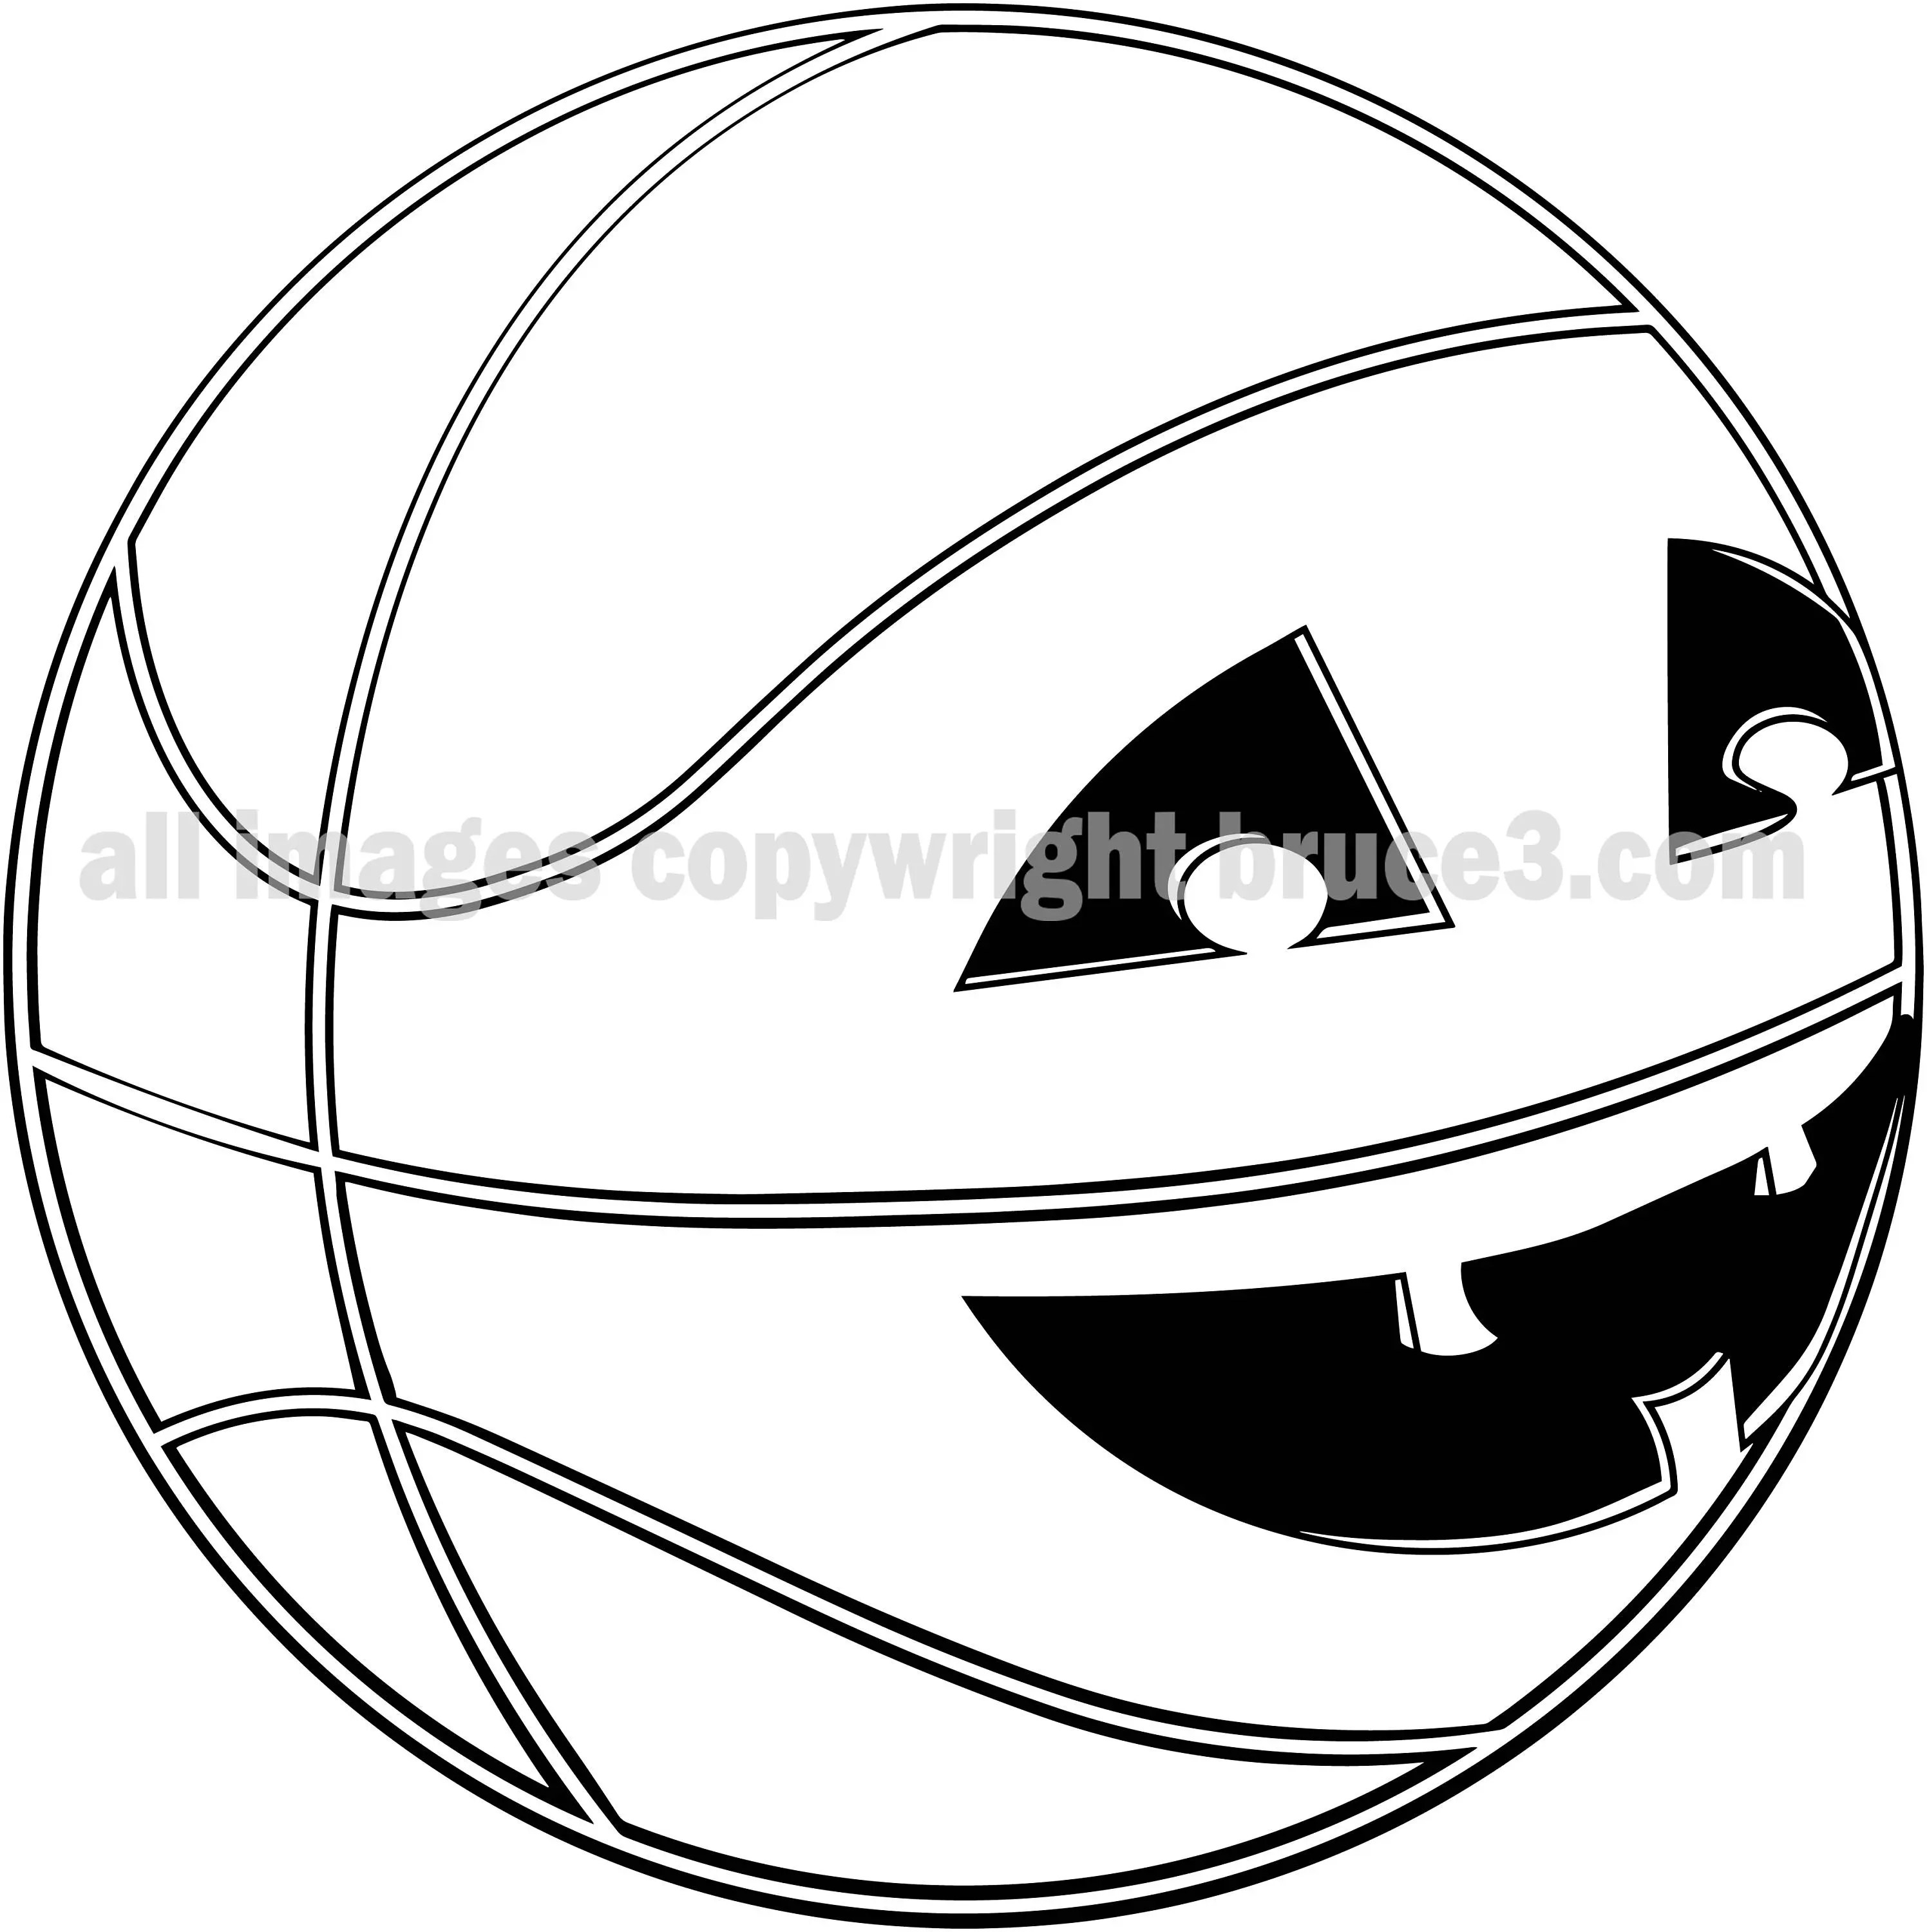 Basketball Halloween Graphic Jack O Lantern Instant Download